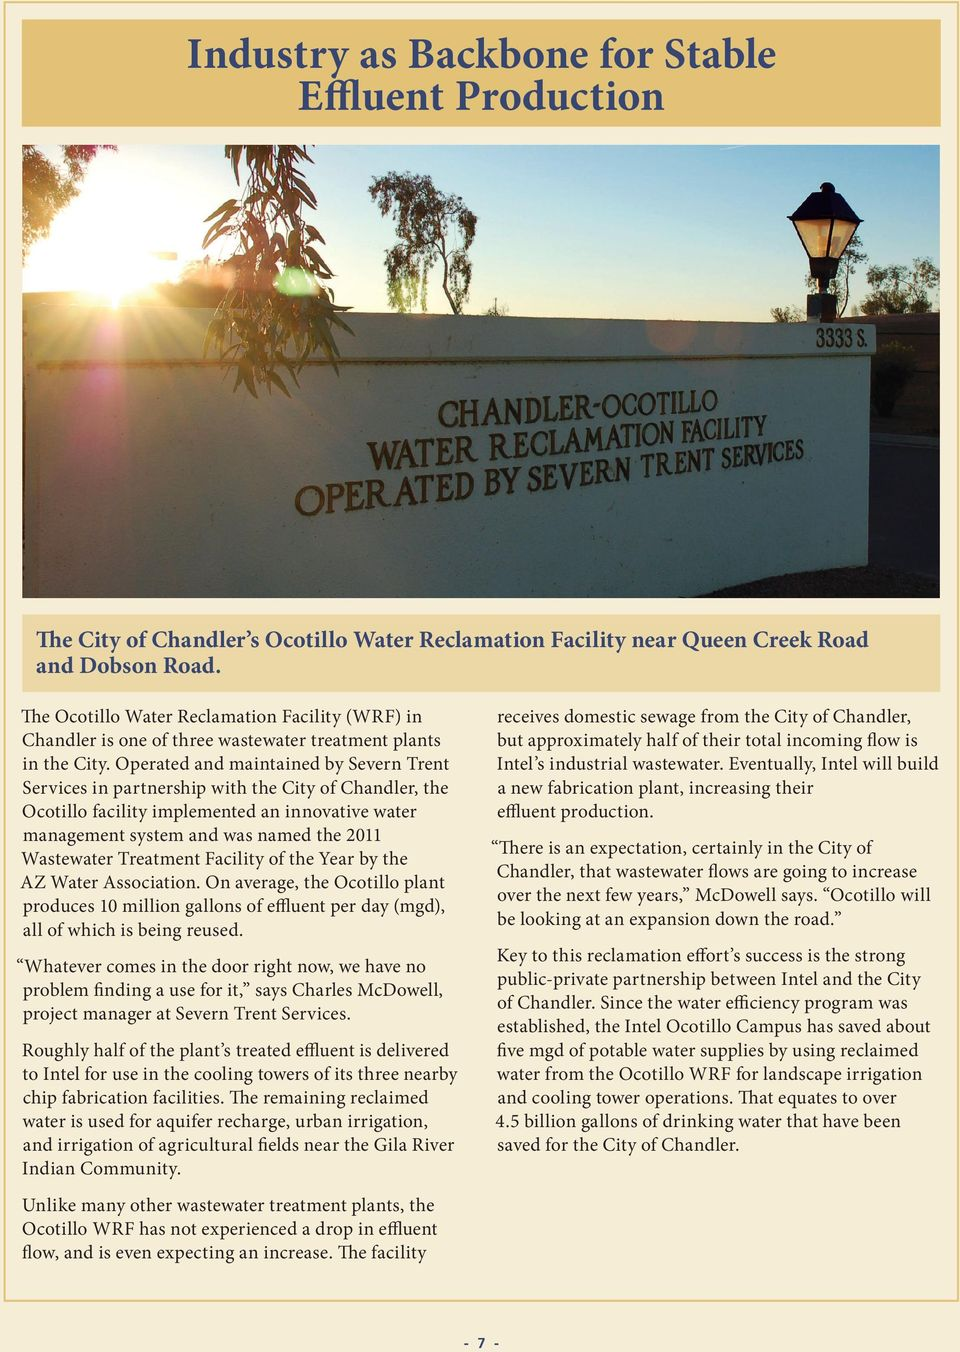 Operated and maintained by Severn Trent Services in partnership with the City of Chandler, the Ocotillo facility implemented an innovative water management system and was named the 2011 Wastewater